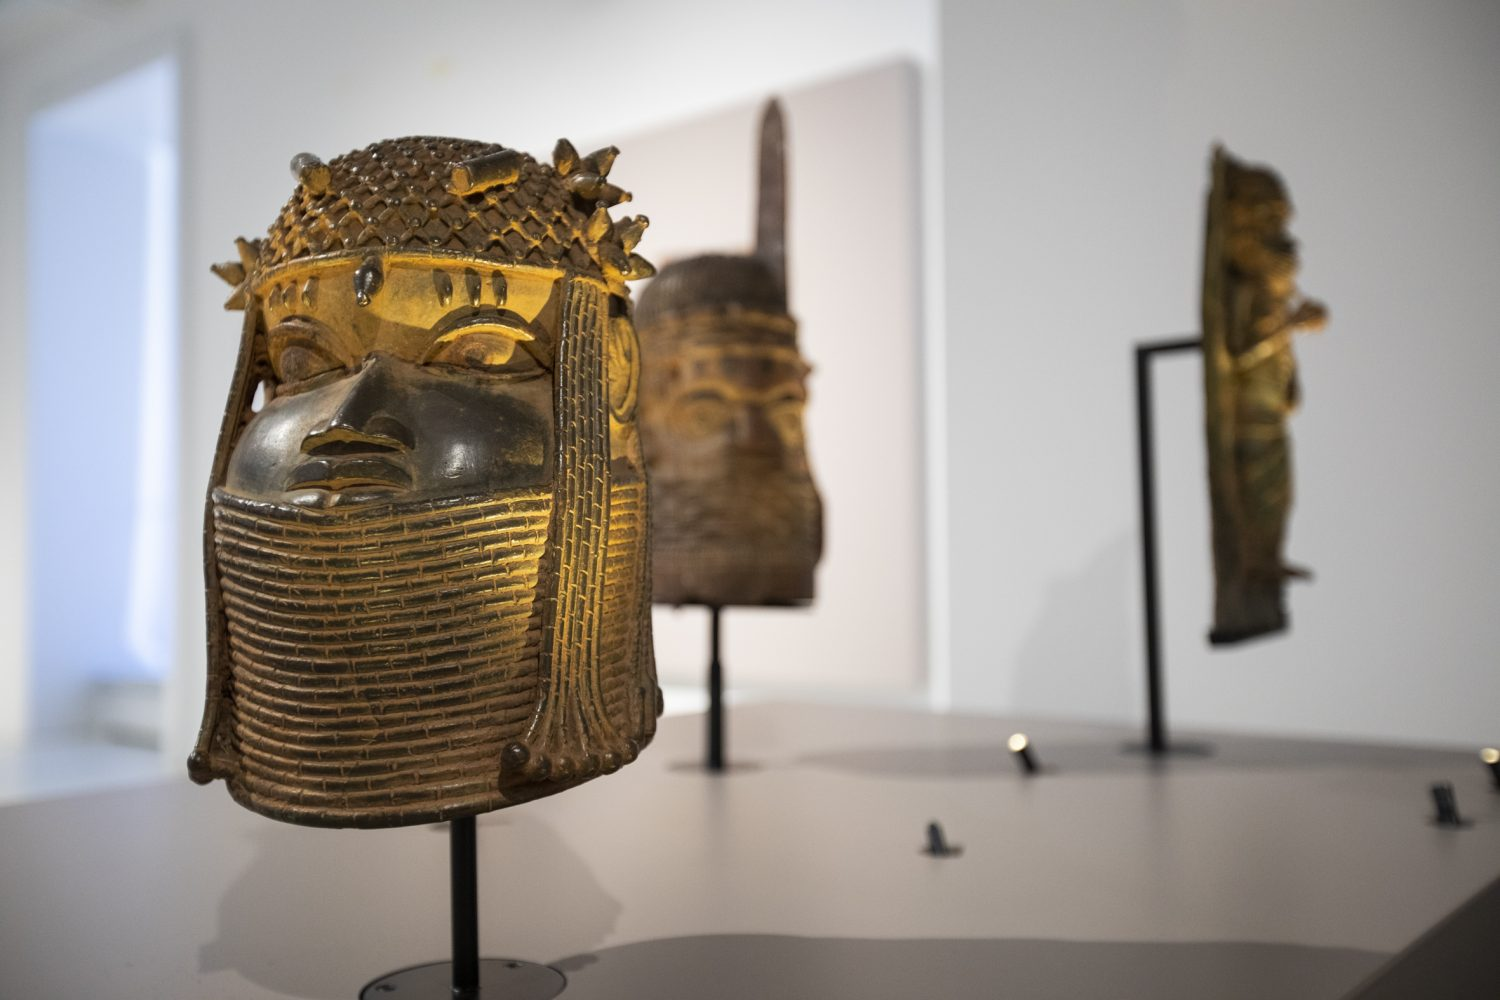 Benin Bronzes Are Scattered All Over World. We Asked Museums That Hold Them Where They Stand on Restitution | Artnet News